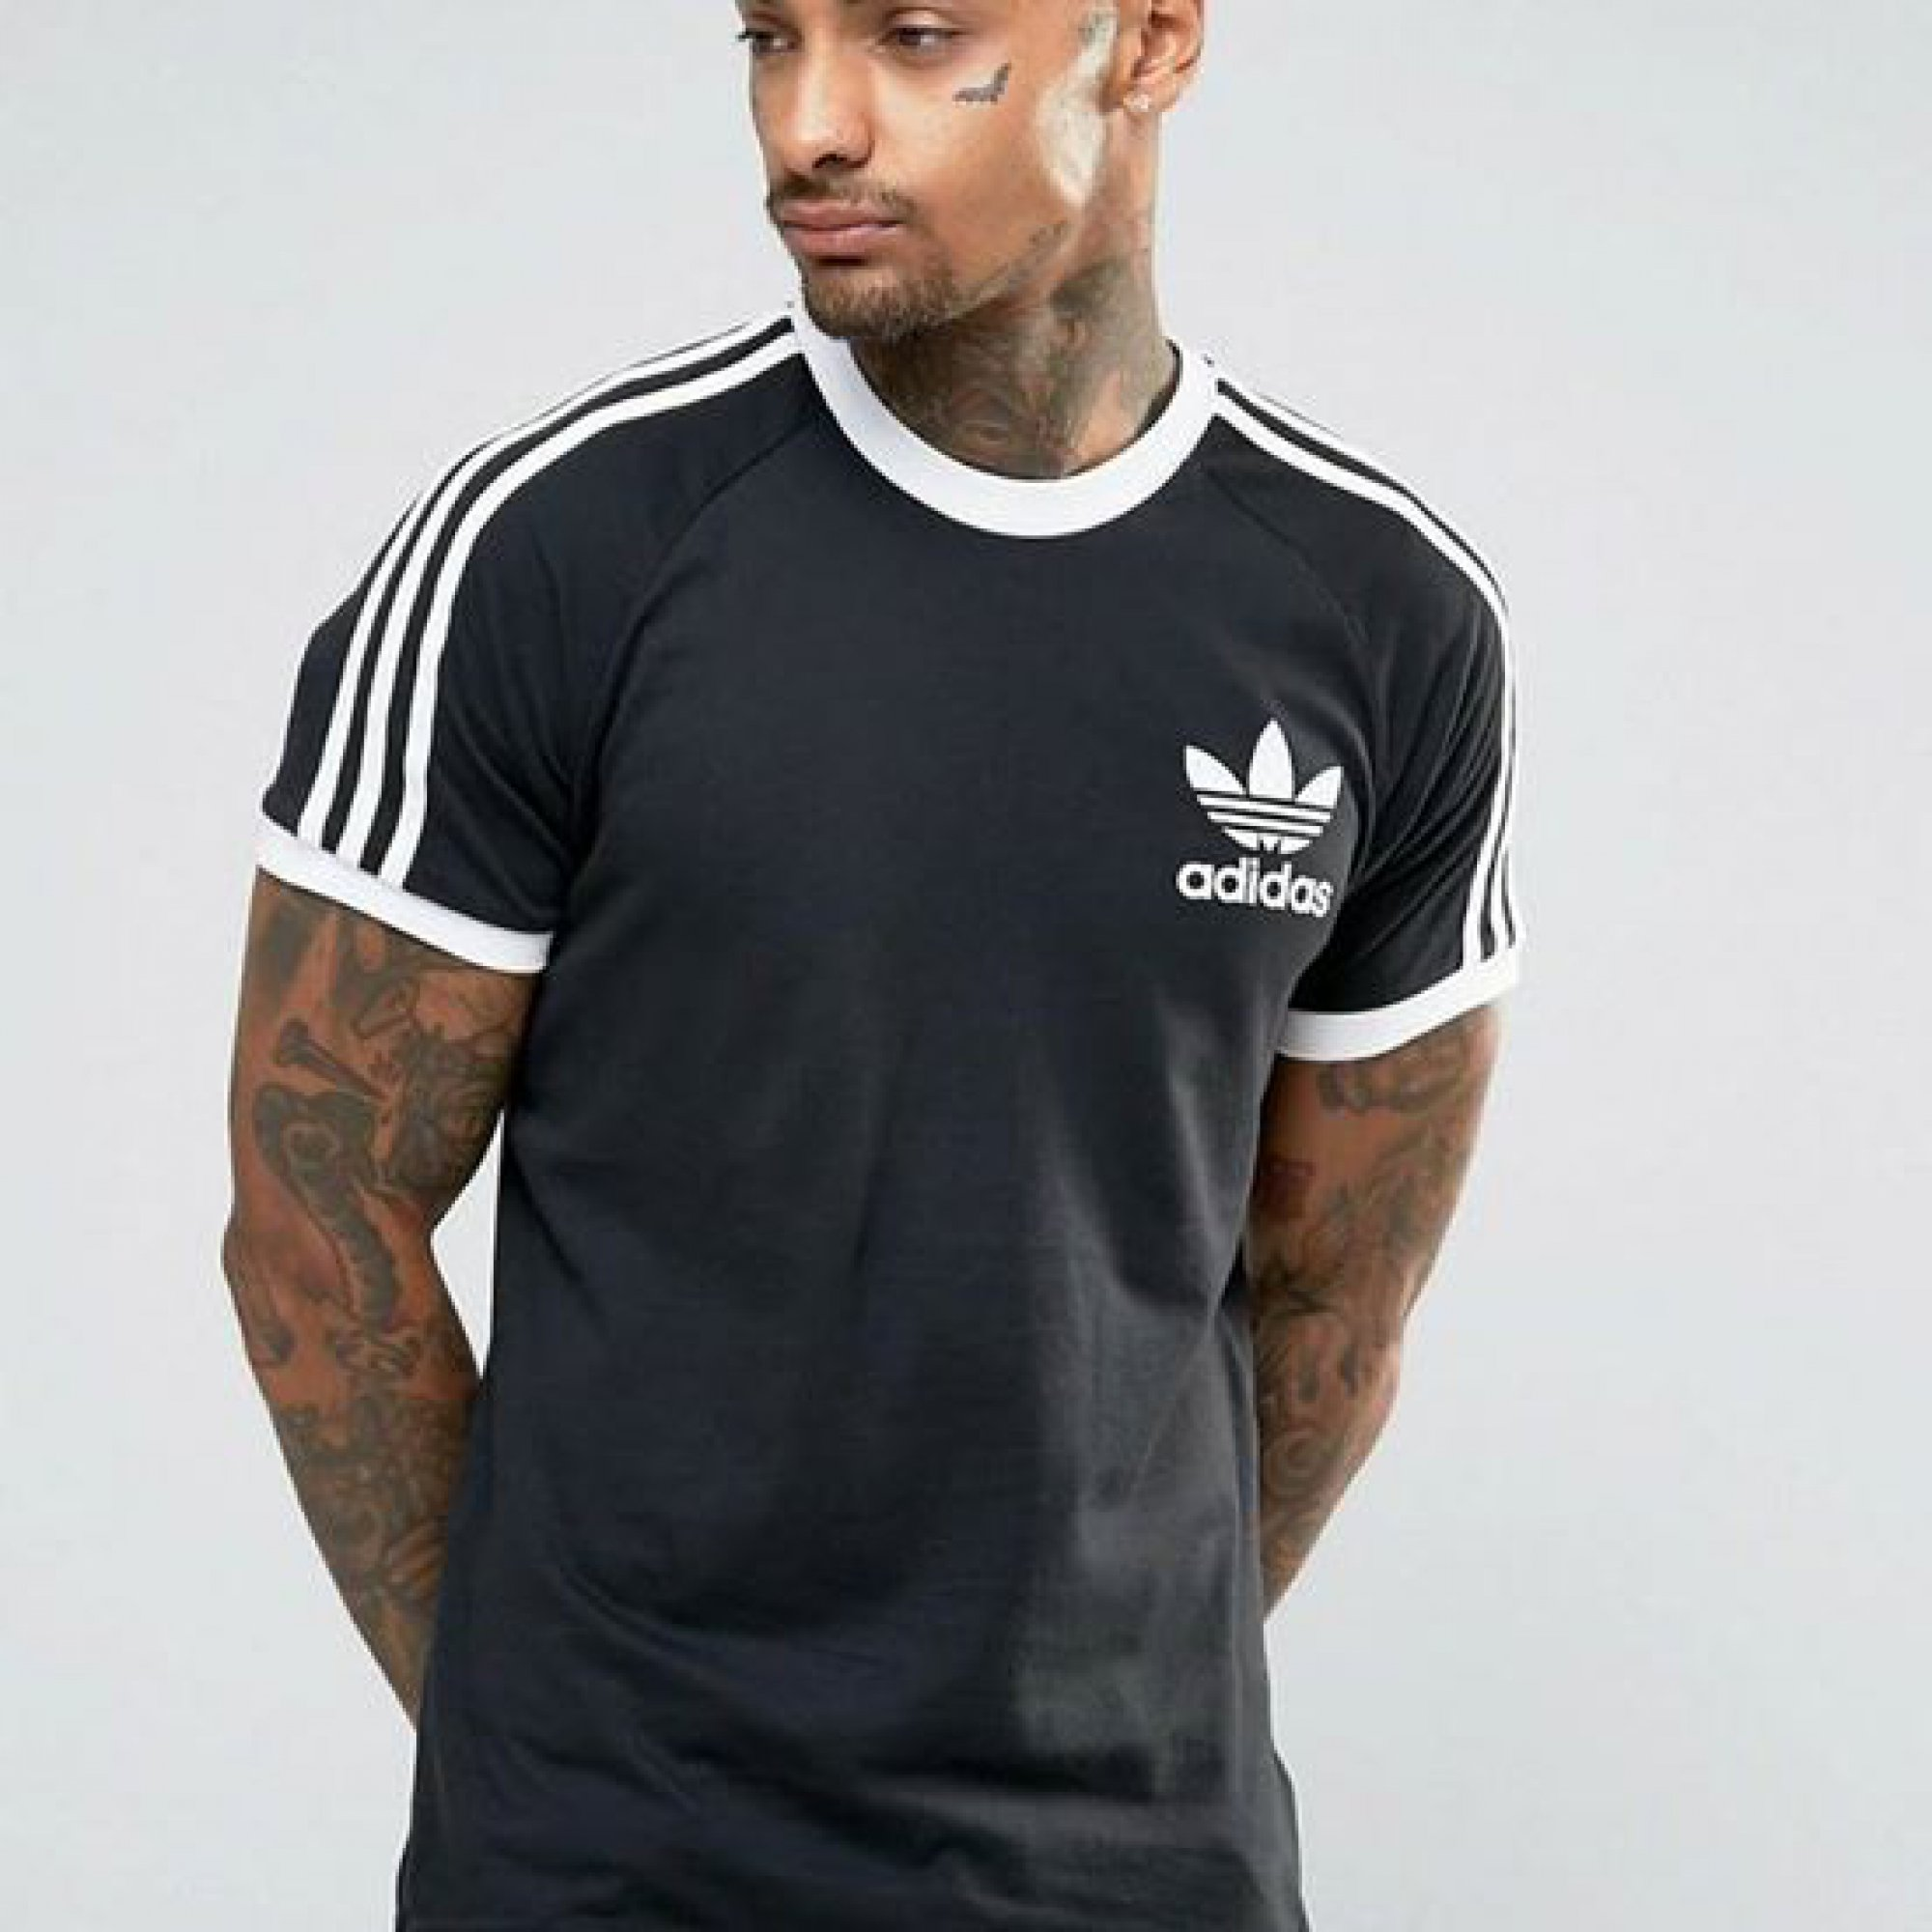 5125d359449 Adidas Originals 3 Stripes T-shirt in Black – brandedleftovers